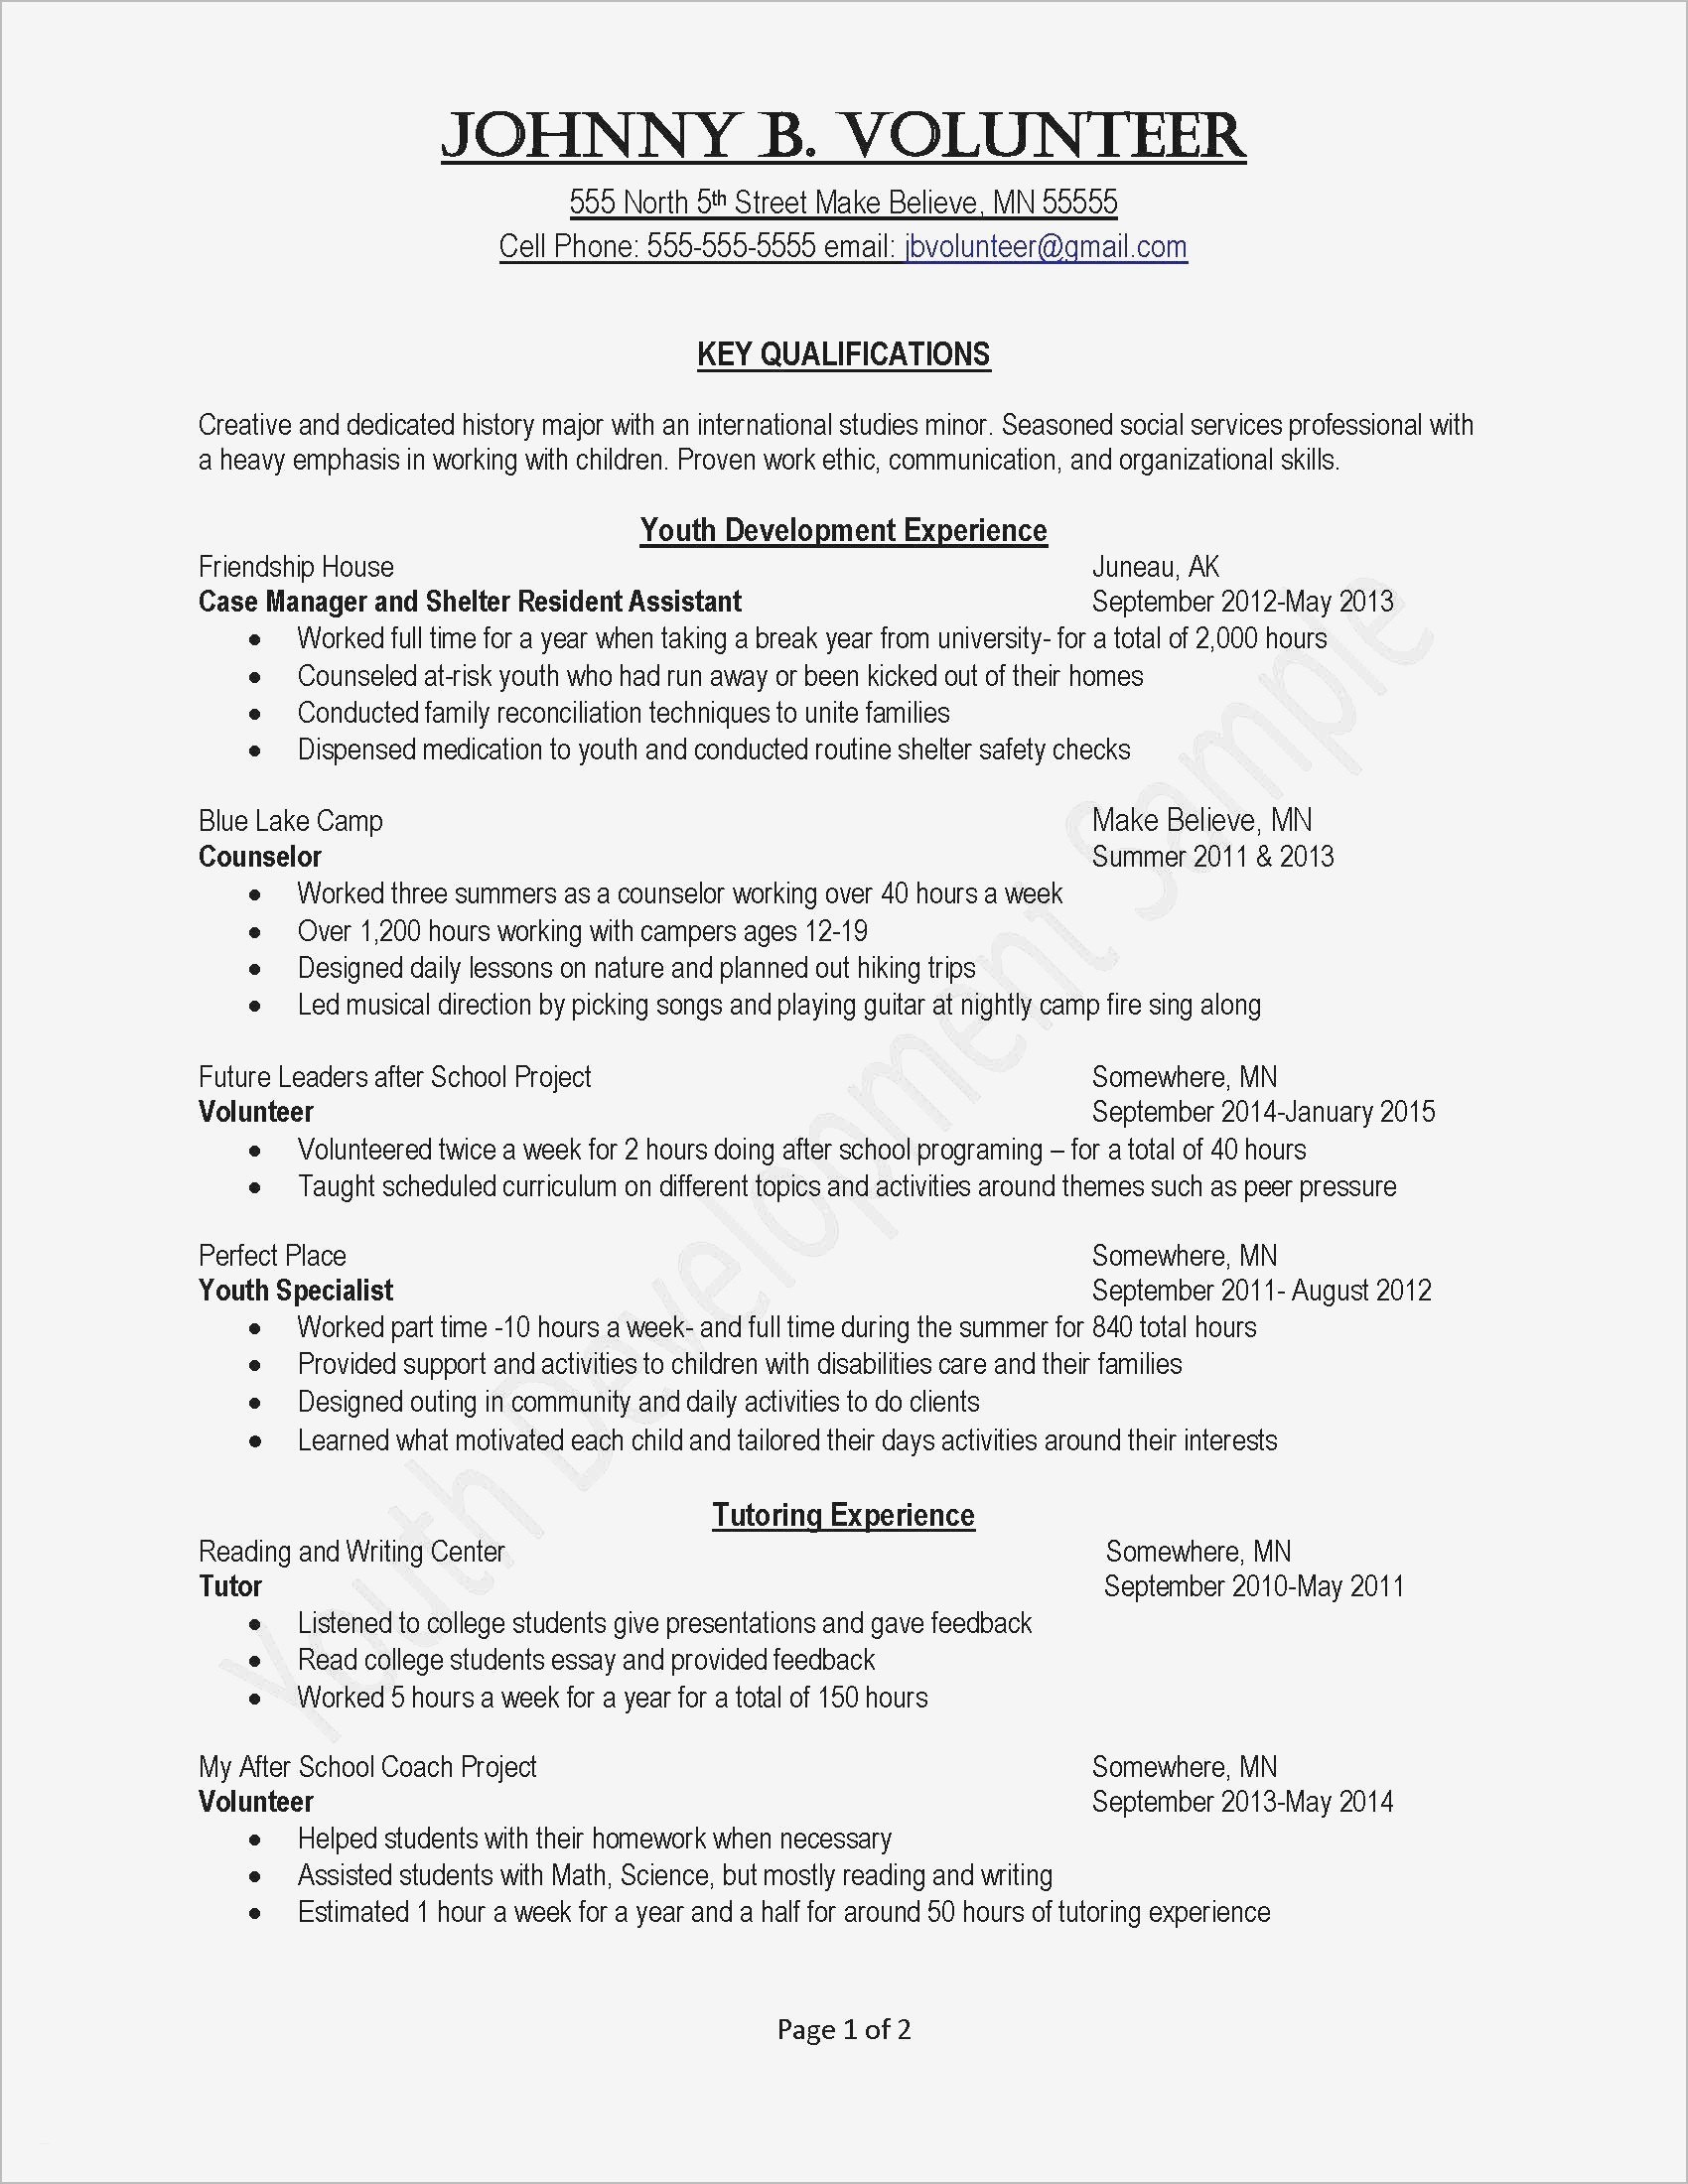 Skills Based Resume Template - Skill Based Resume Template Unique Job Fer Letter Template Us Copy